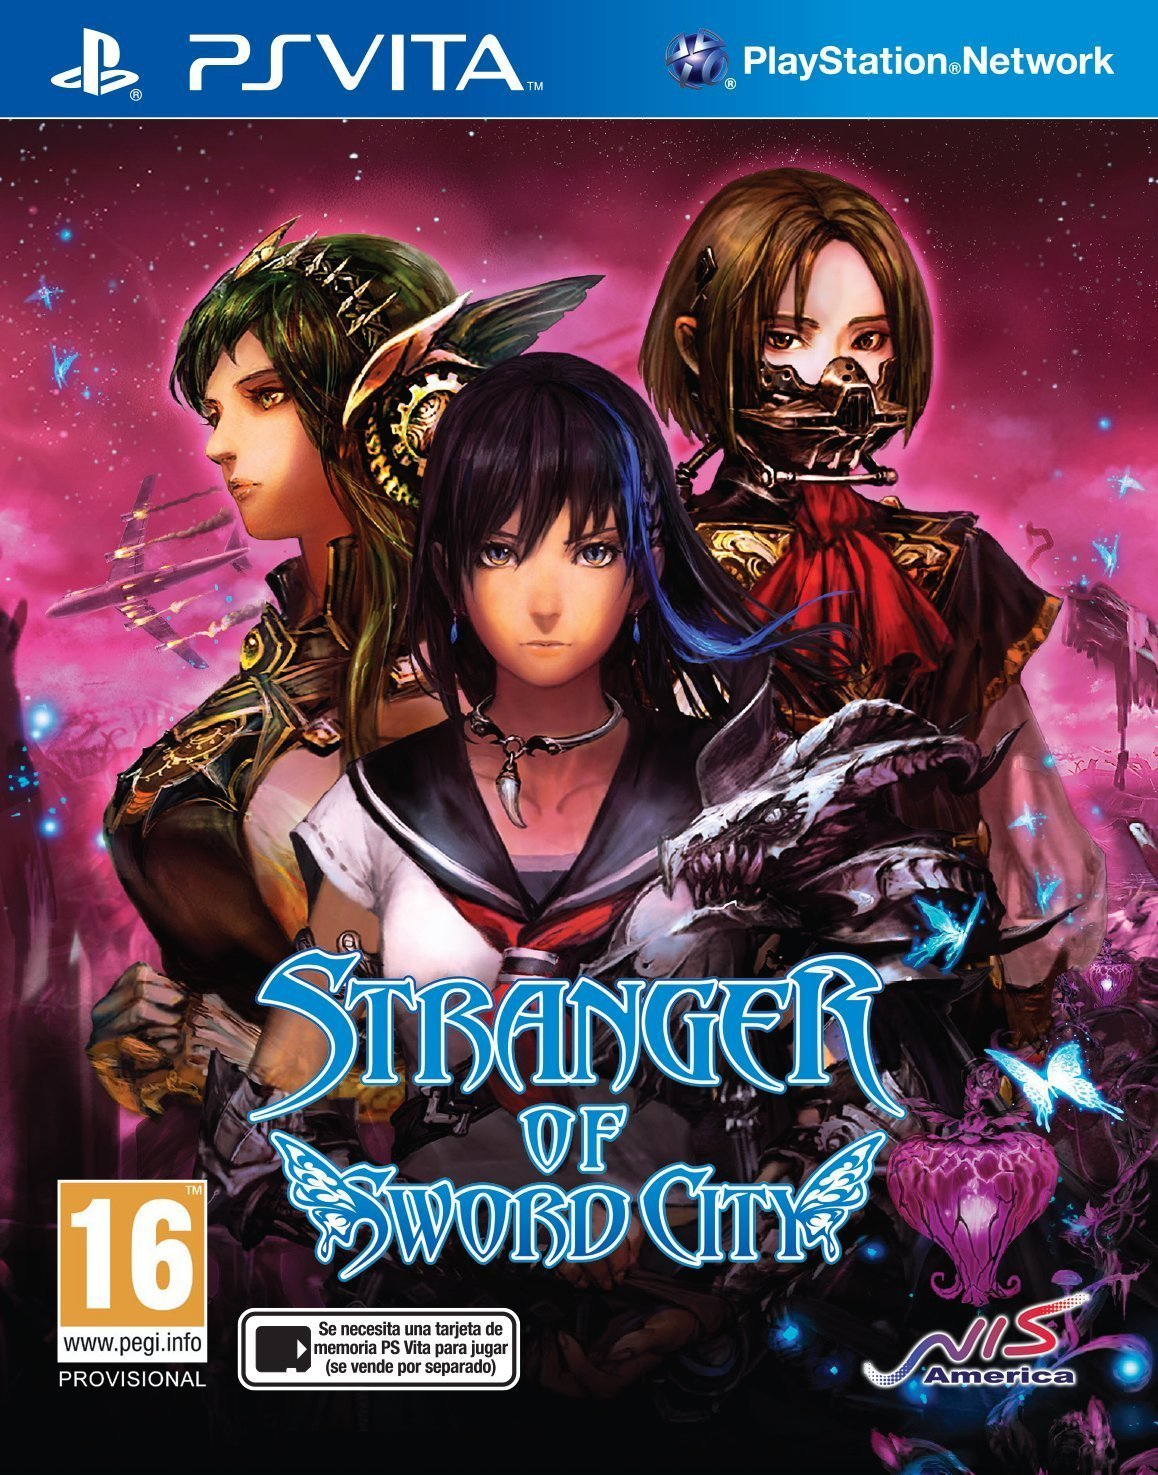 Stranger of Sword City: Black Palace